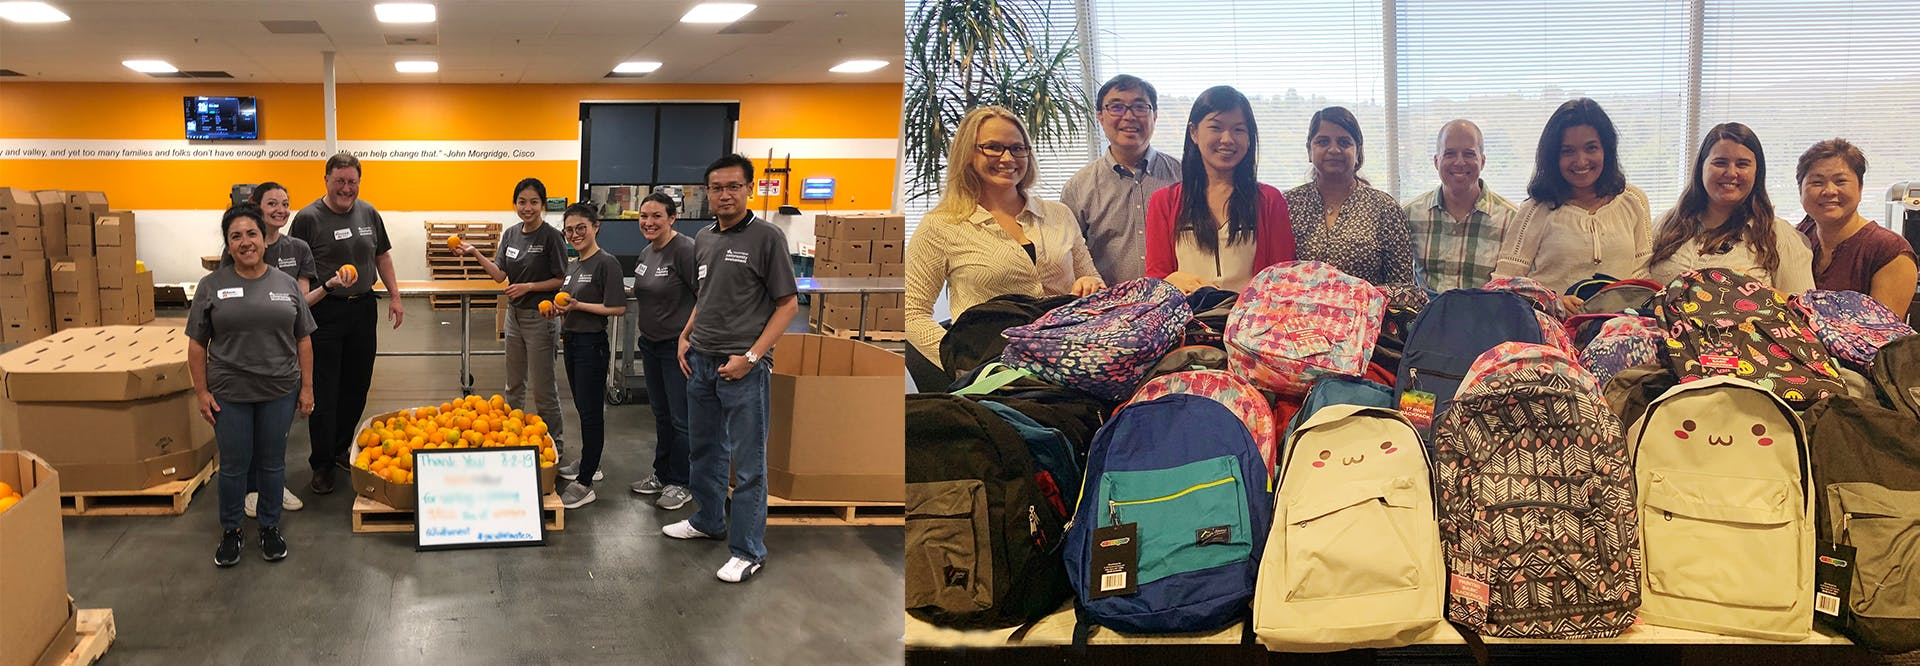 Baker Tilly California team members participate in various stewardship activities in the community